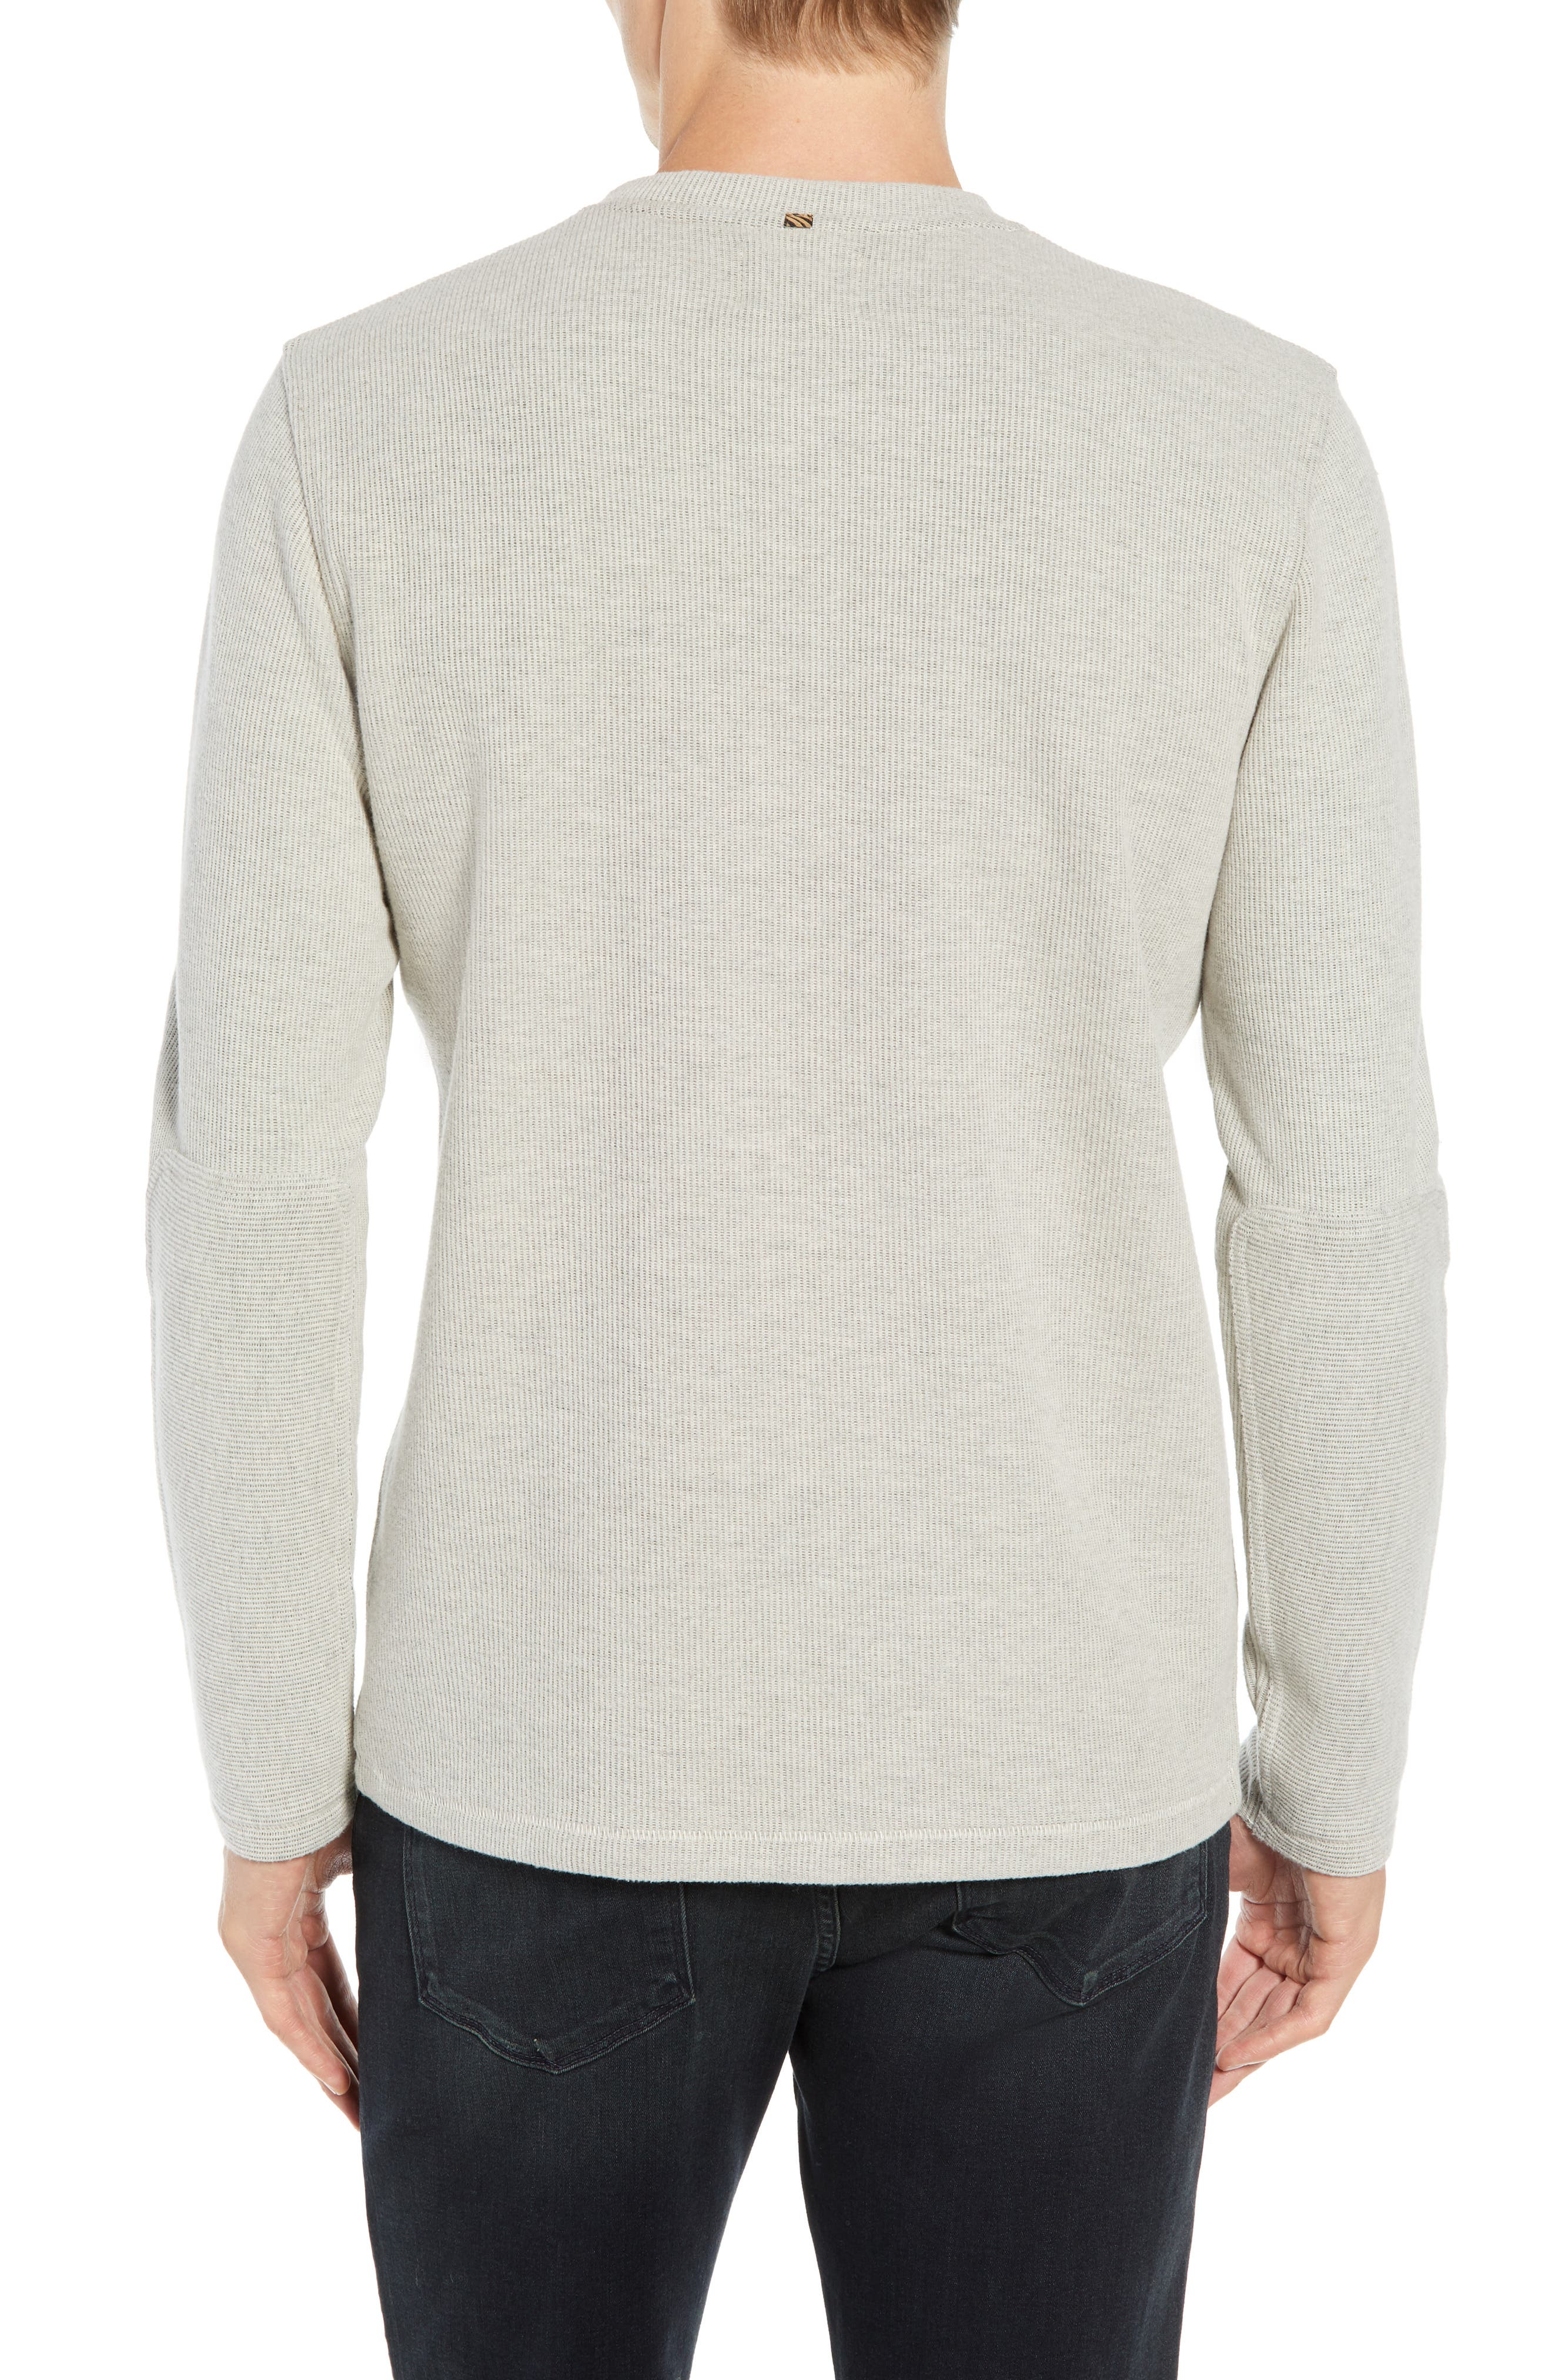 BILLY REID,                             Ribbed Long Sleeve Henley,                             Alternate thumbnail 2, color,                             NATURAL